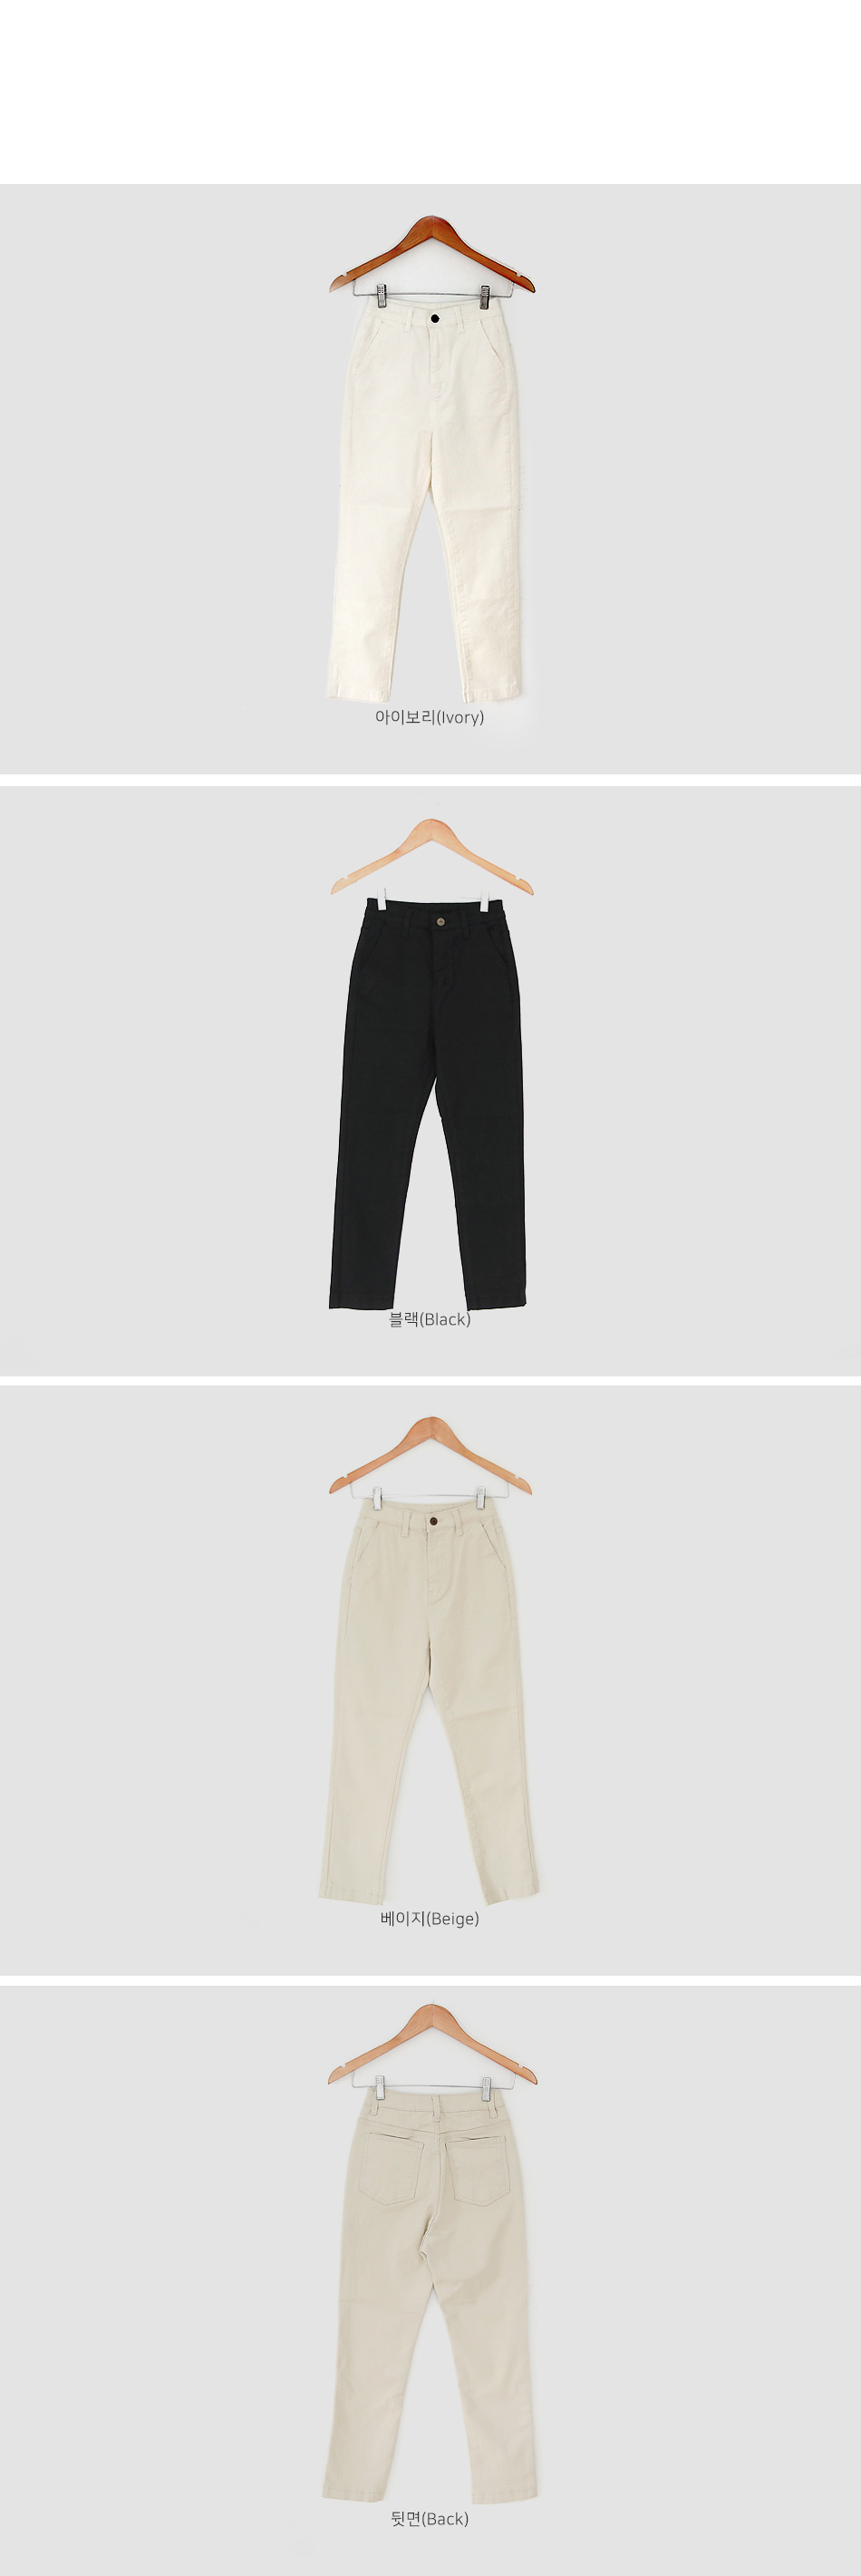 Daily look pants